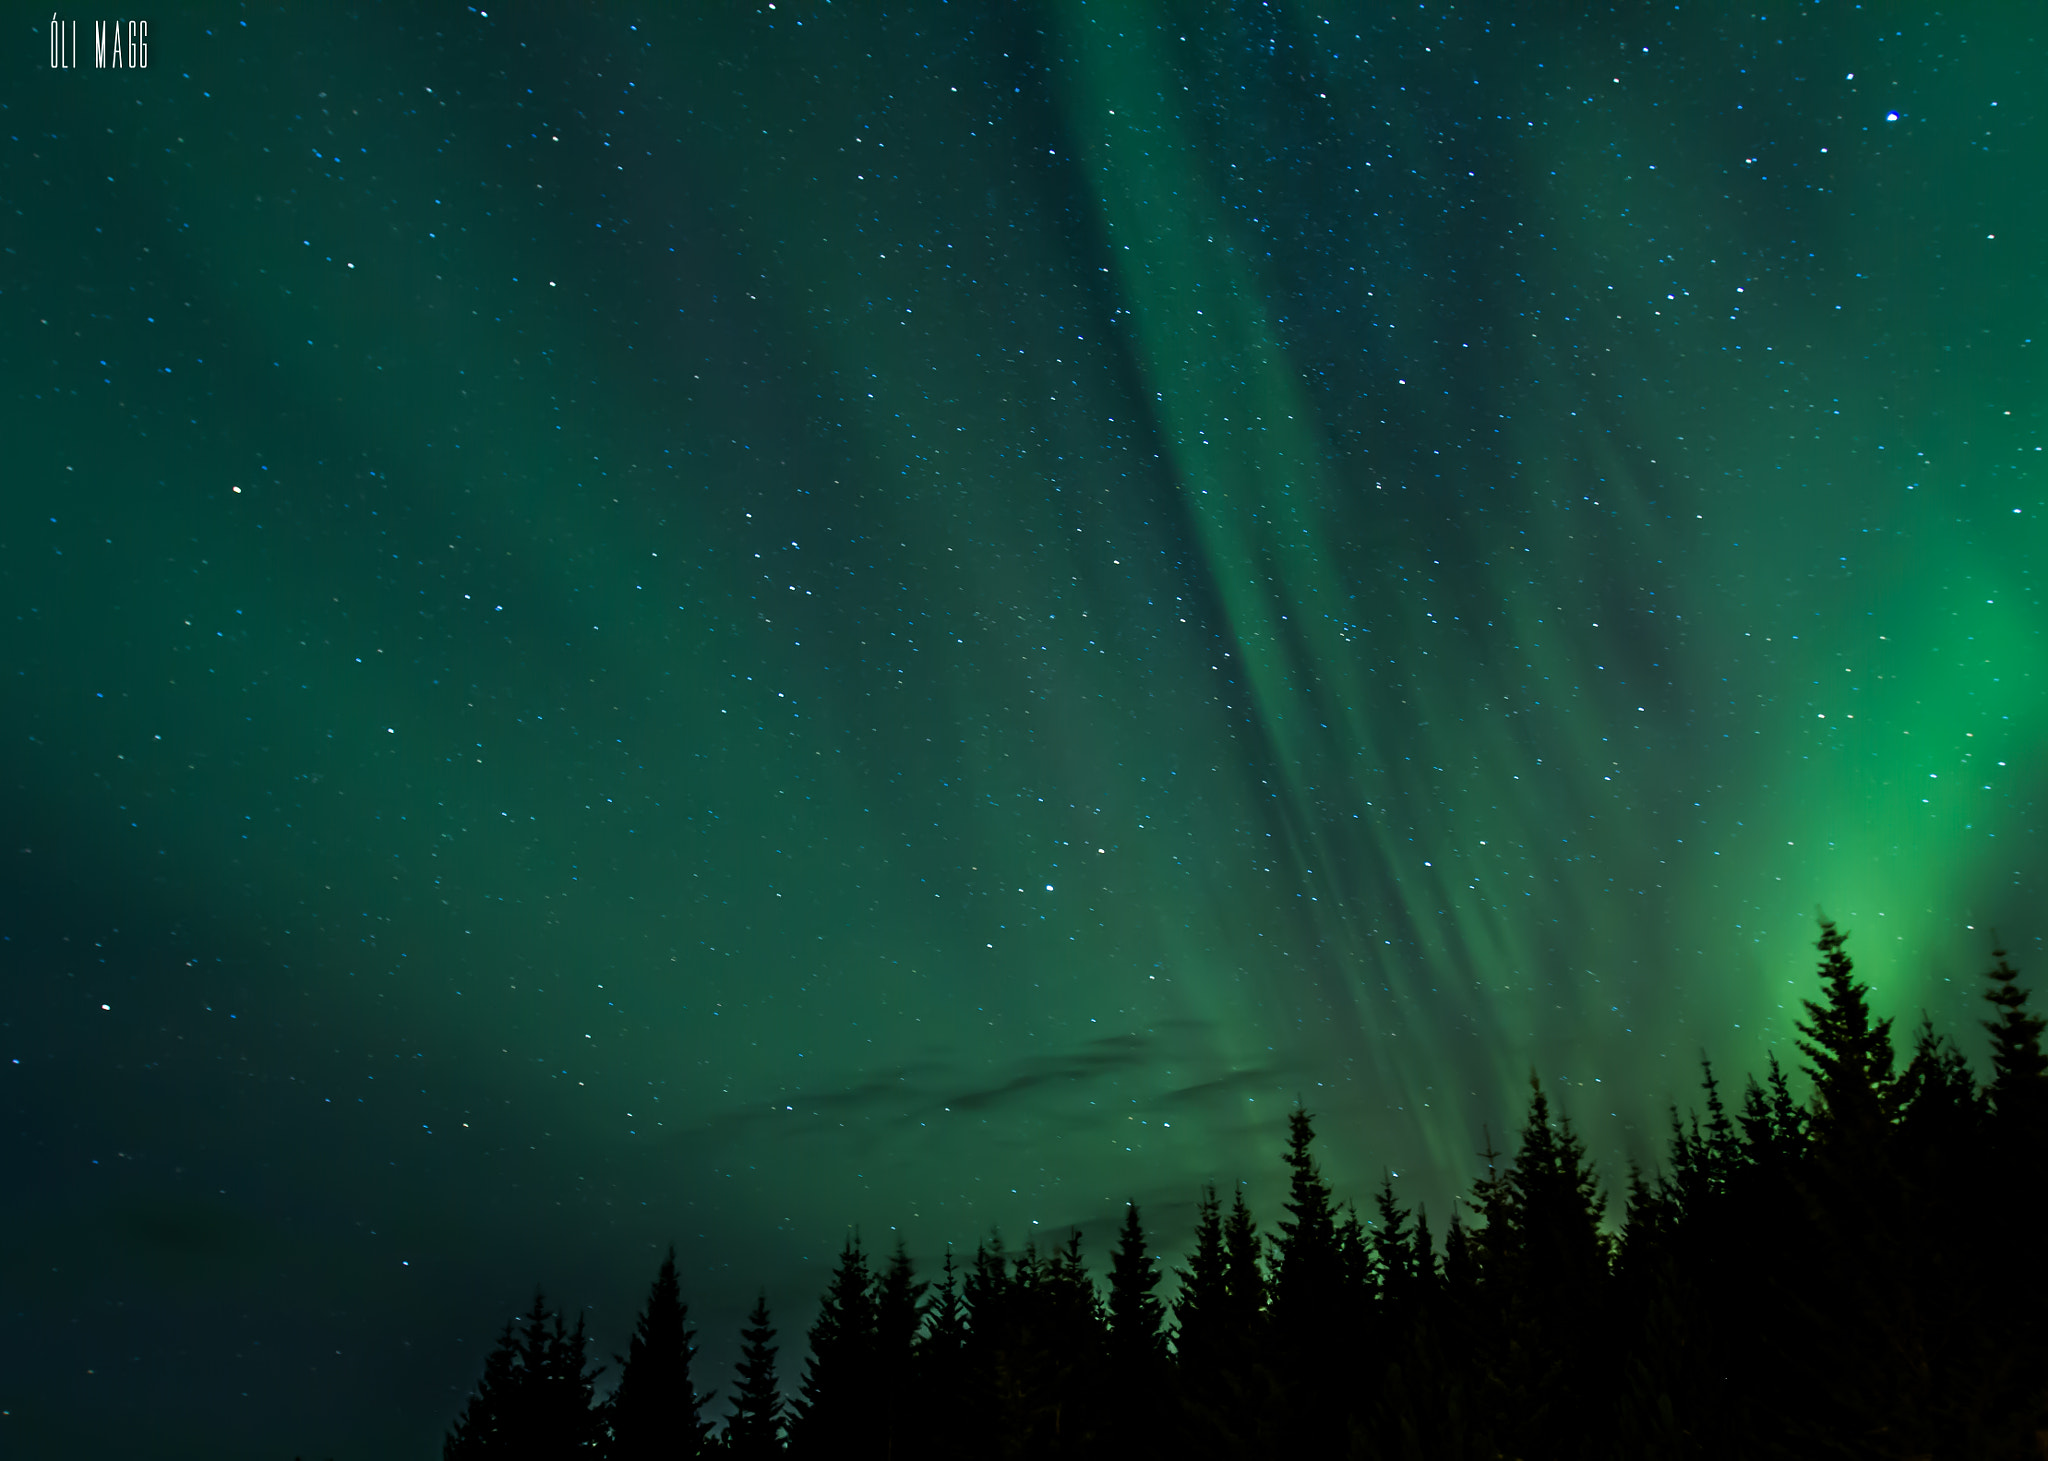 Photograph The northern lights - Iceland 2 by Óli Magg on 500px